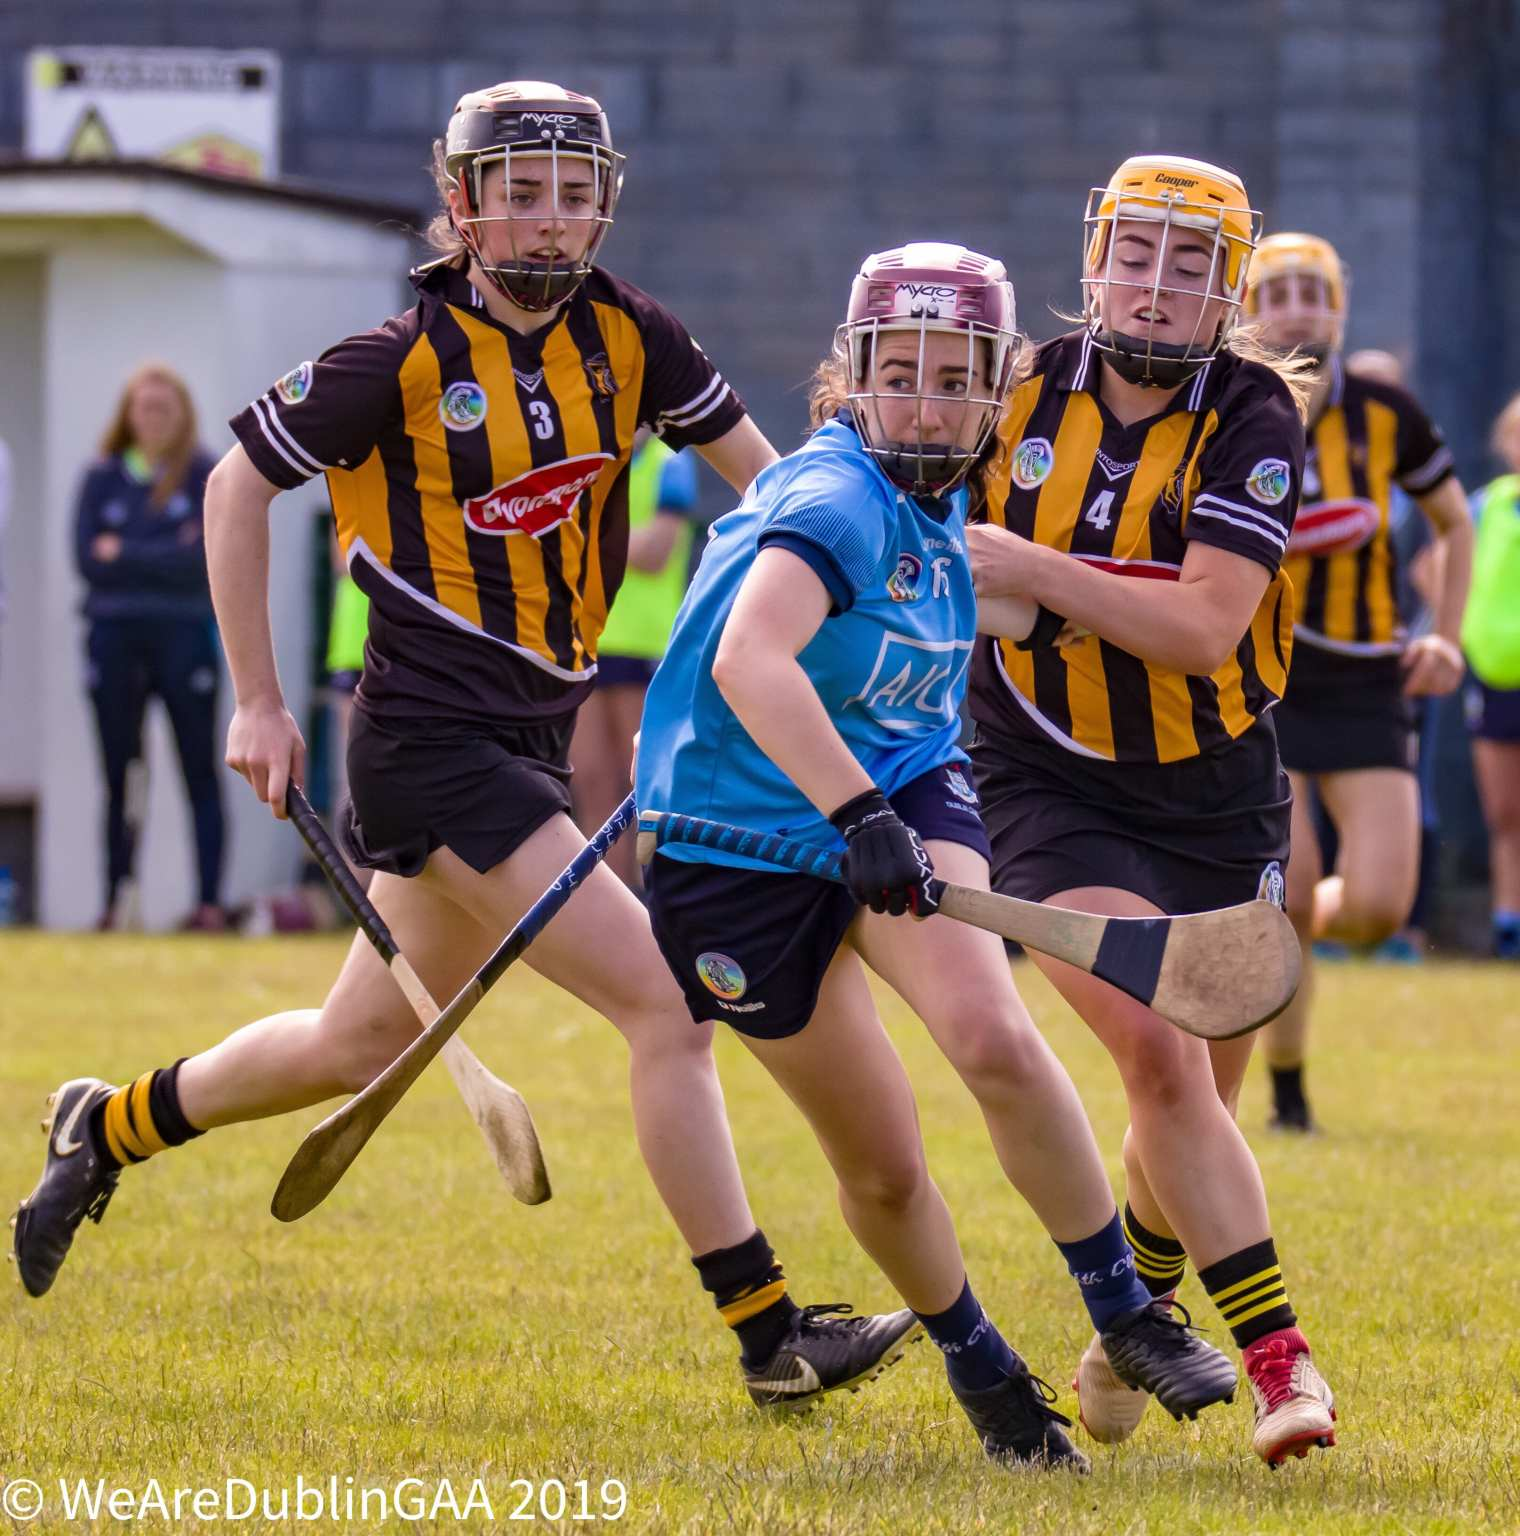 A Dublin Camogie Players gets away from two Kilkenny players during their All Ireland championship game both the Dublin Senior And Intermediate teams lost their games.